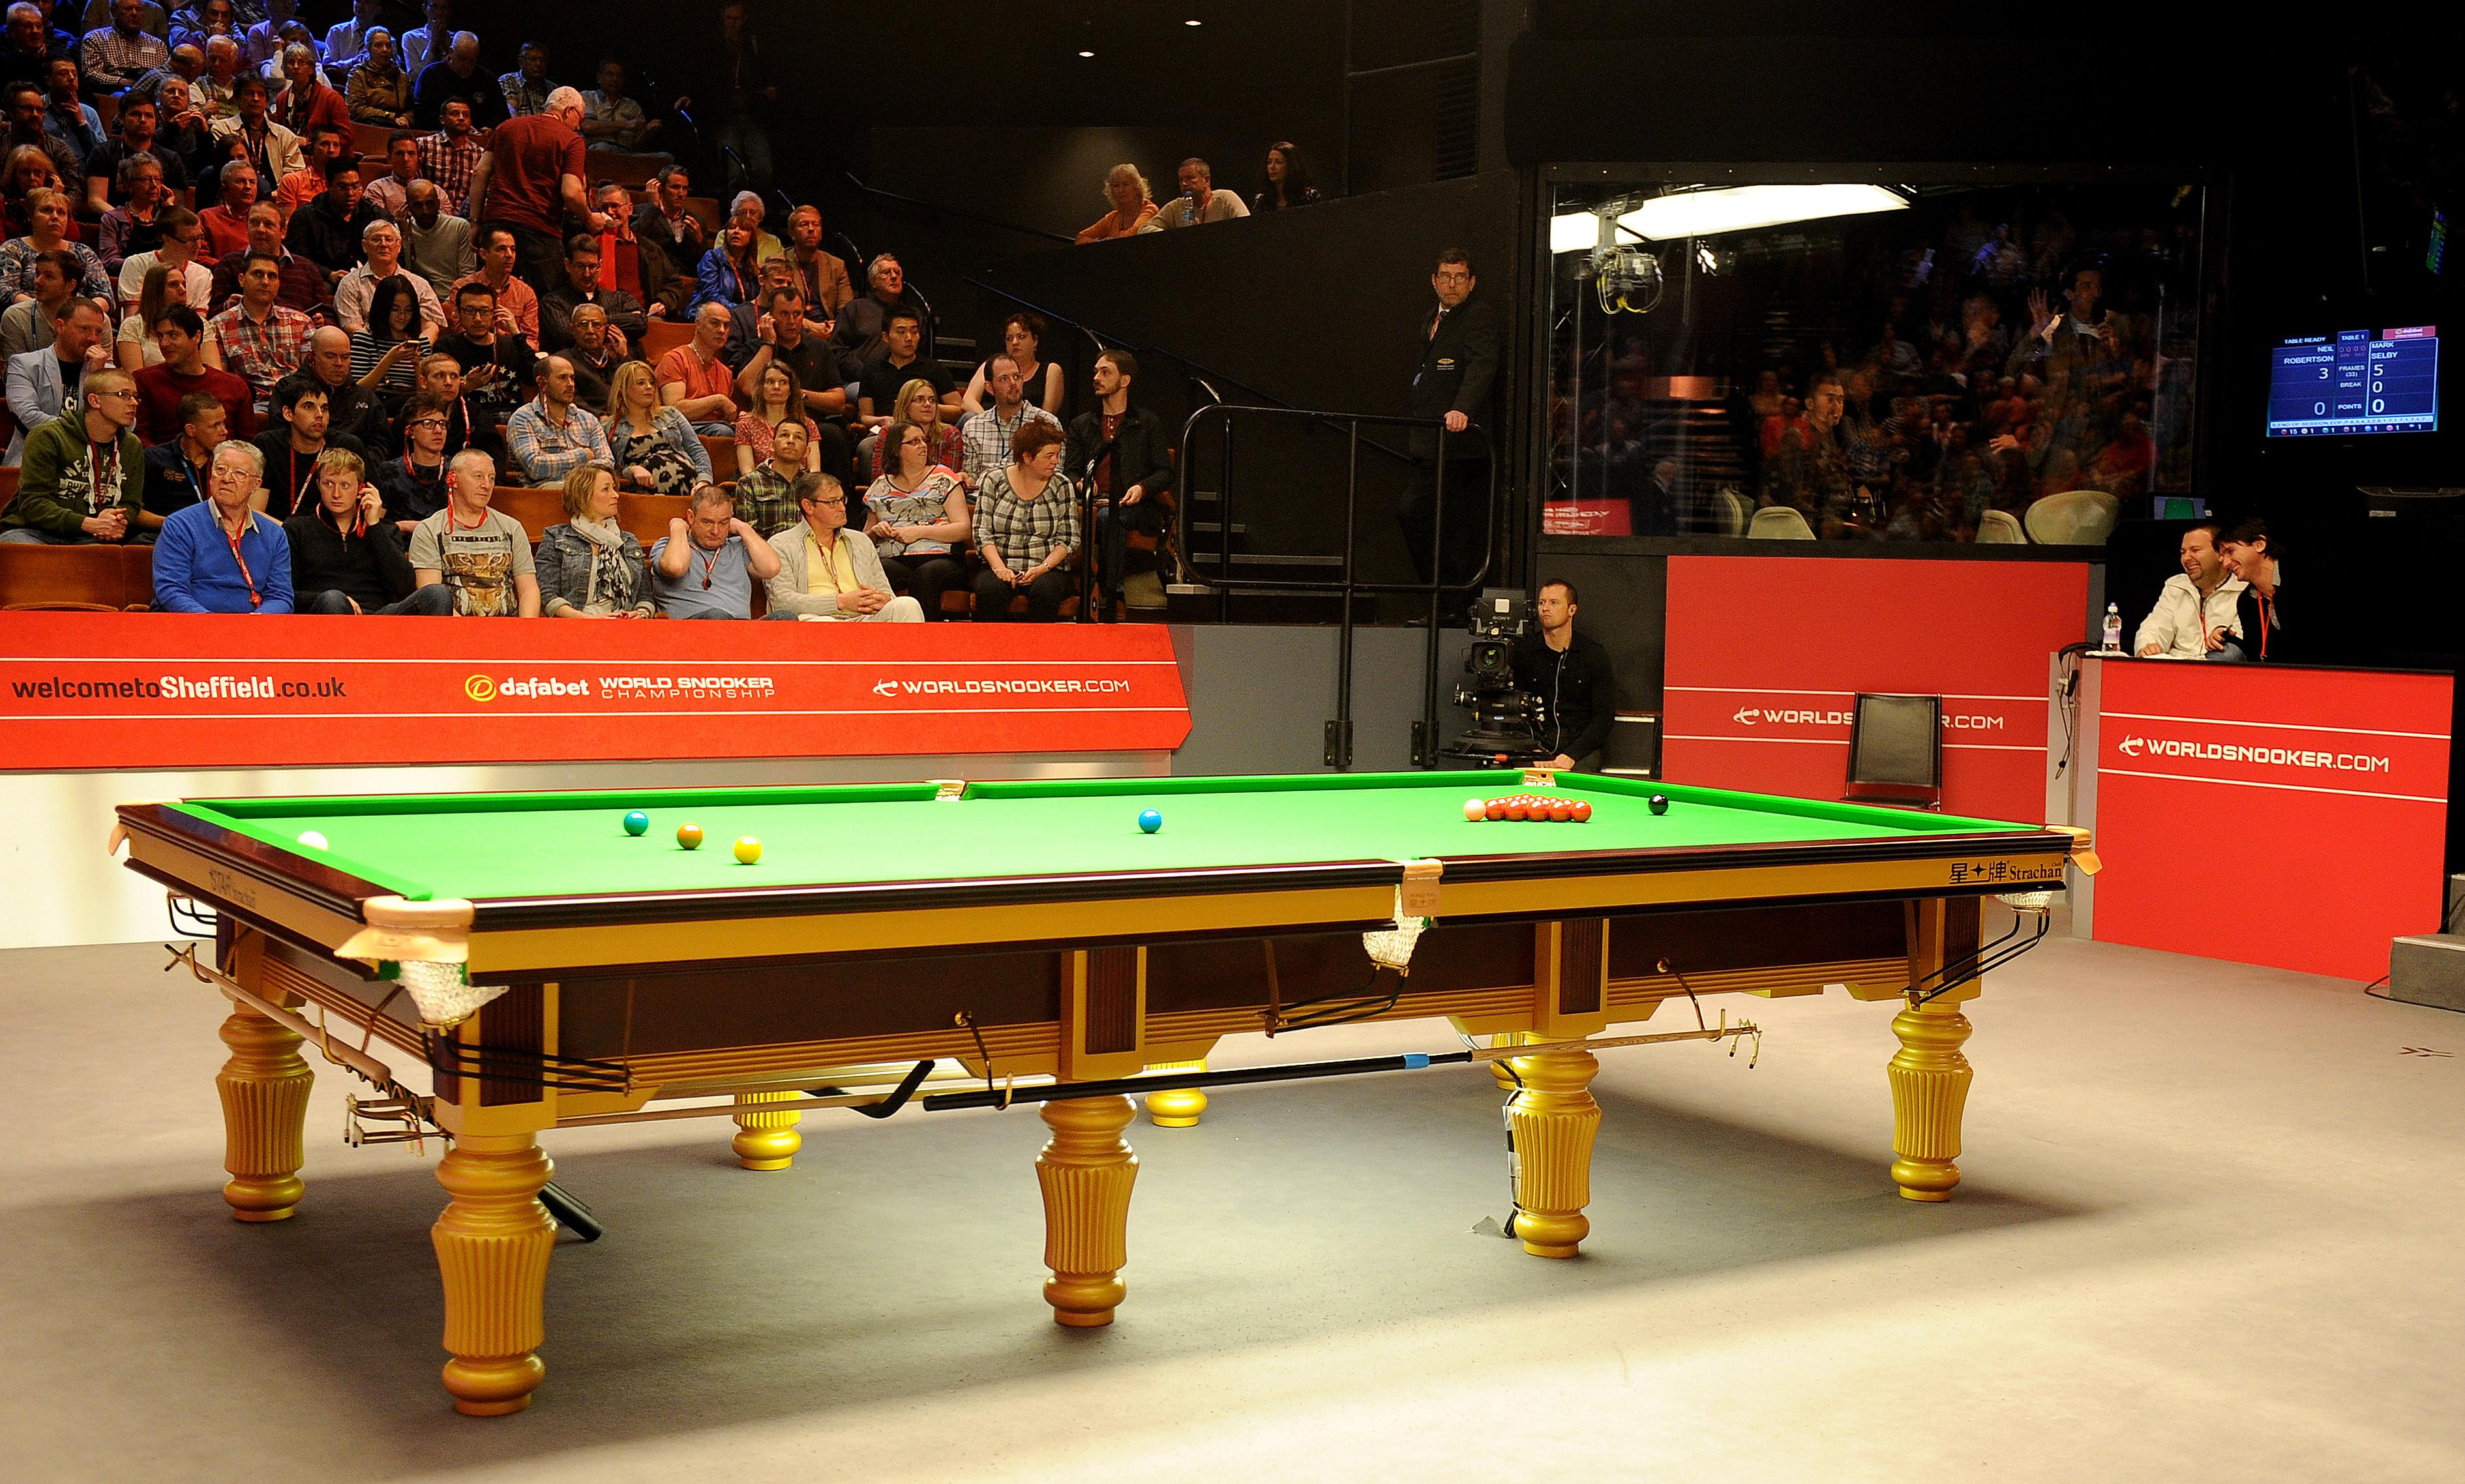 The Crucible in Sheffield will once again play host to the competition